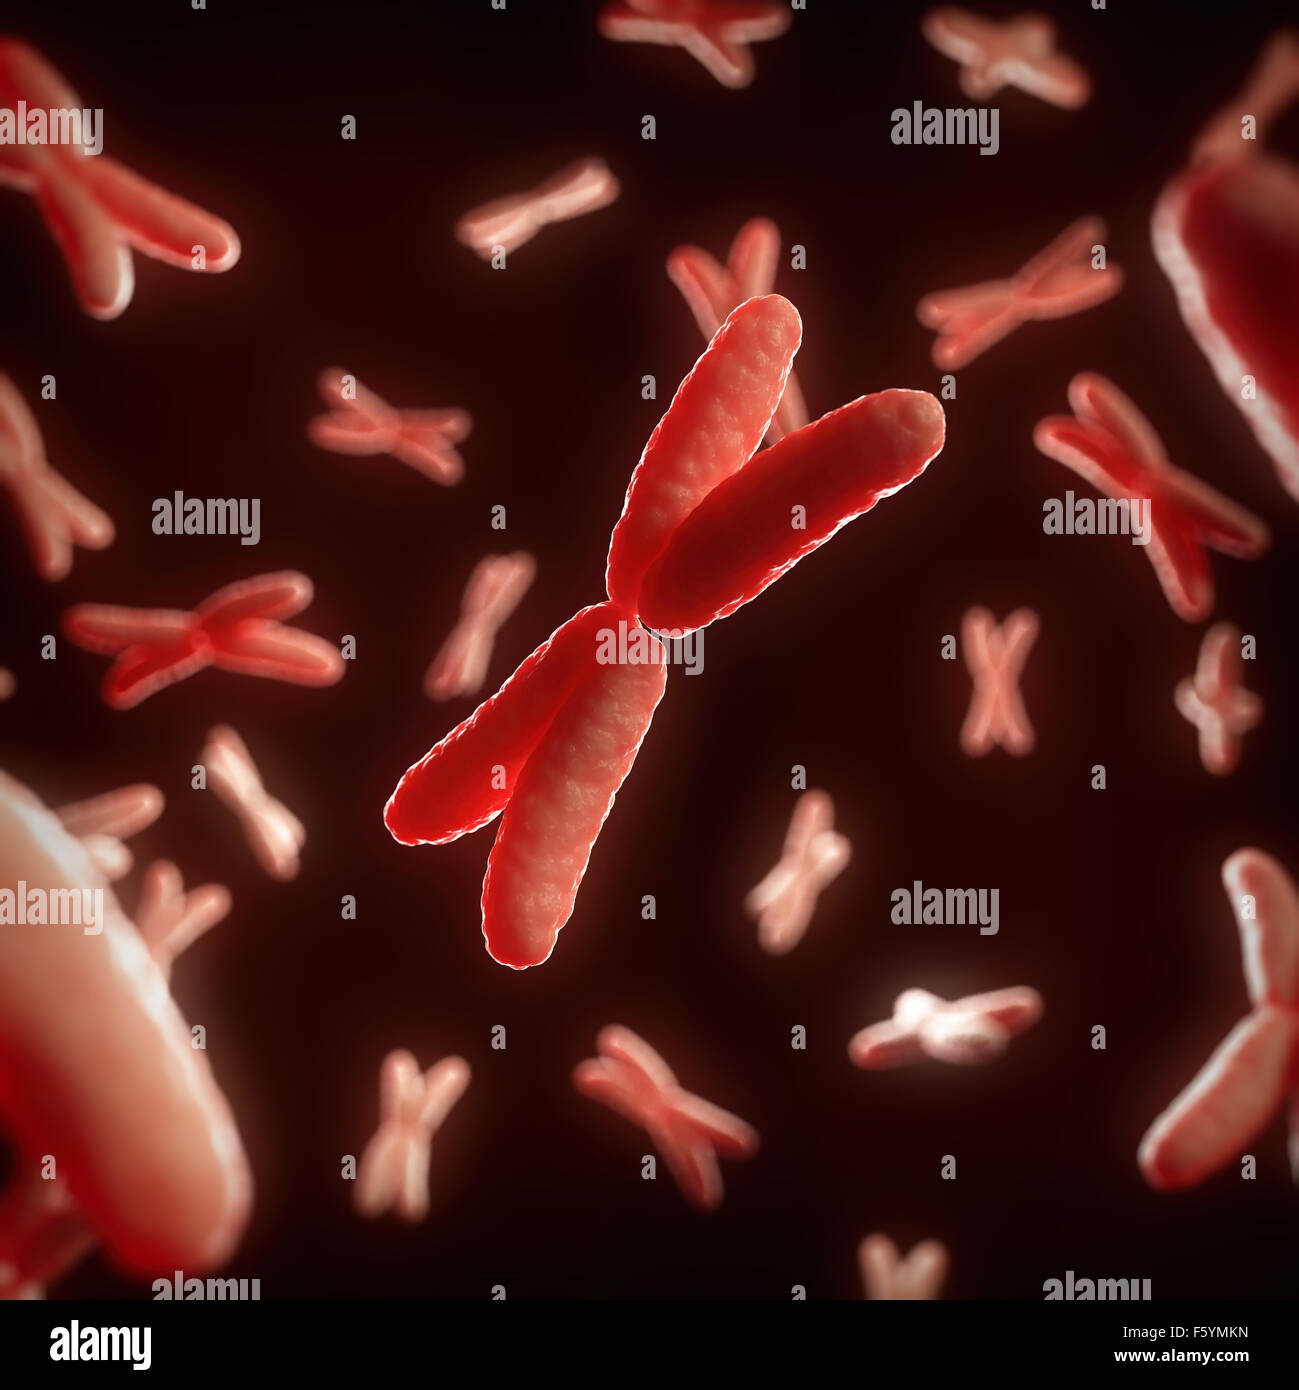 medical 3d illustration of some X chromosomes - Stock Image